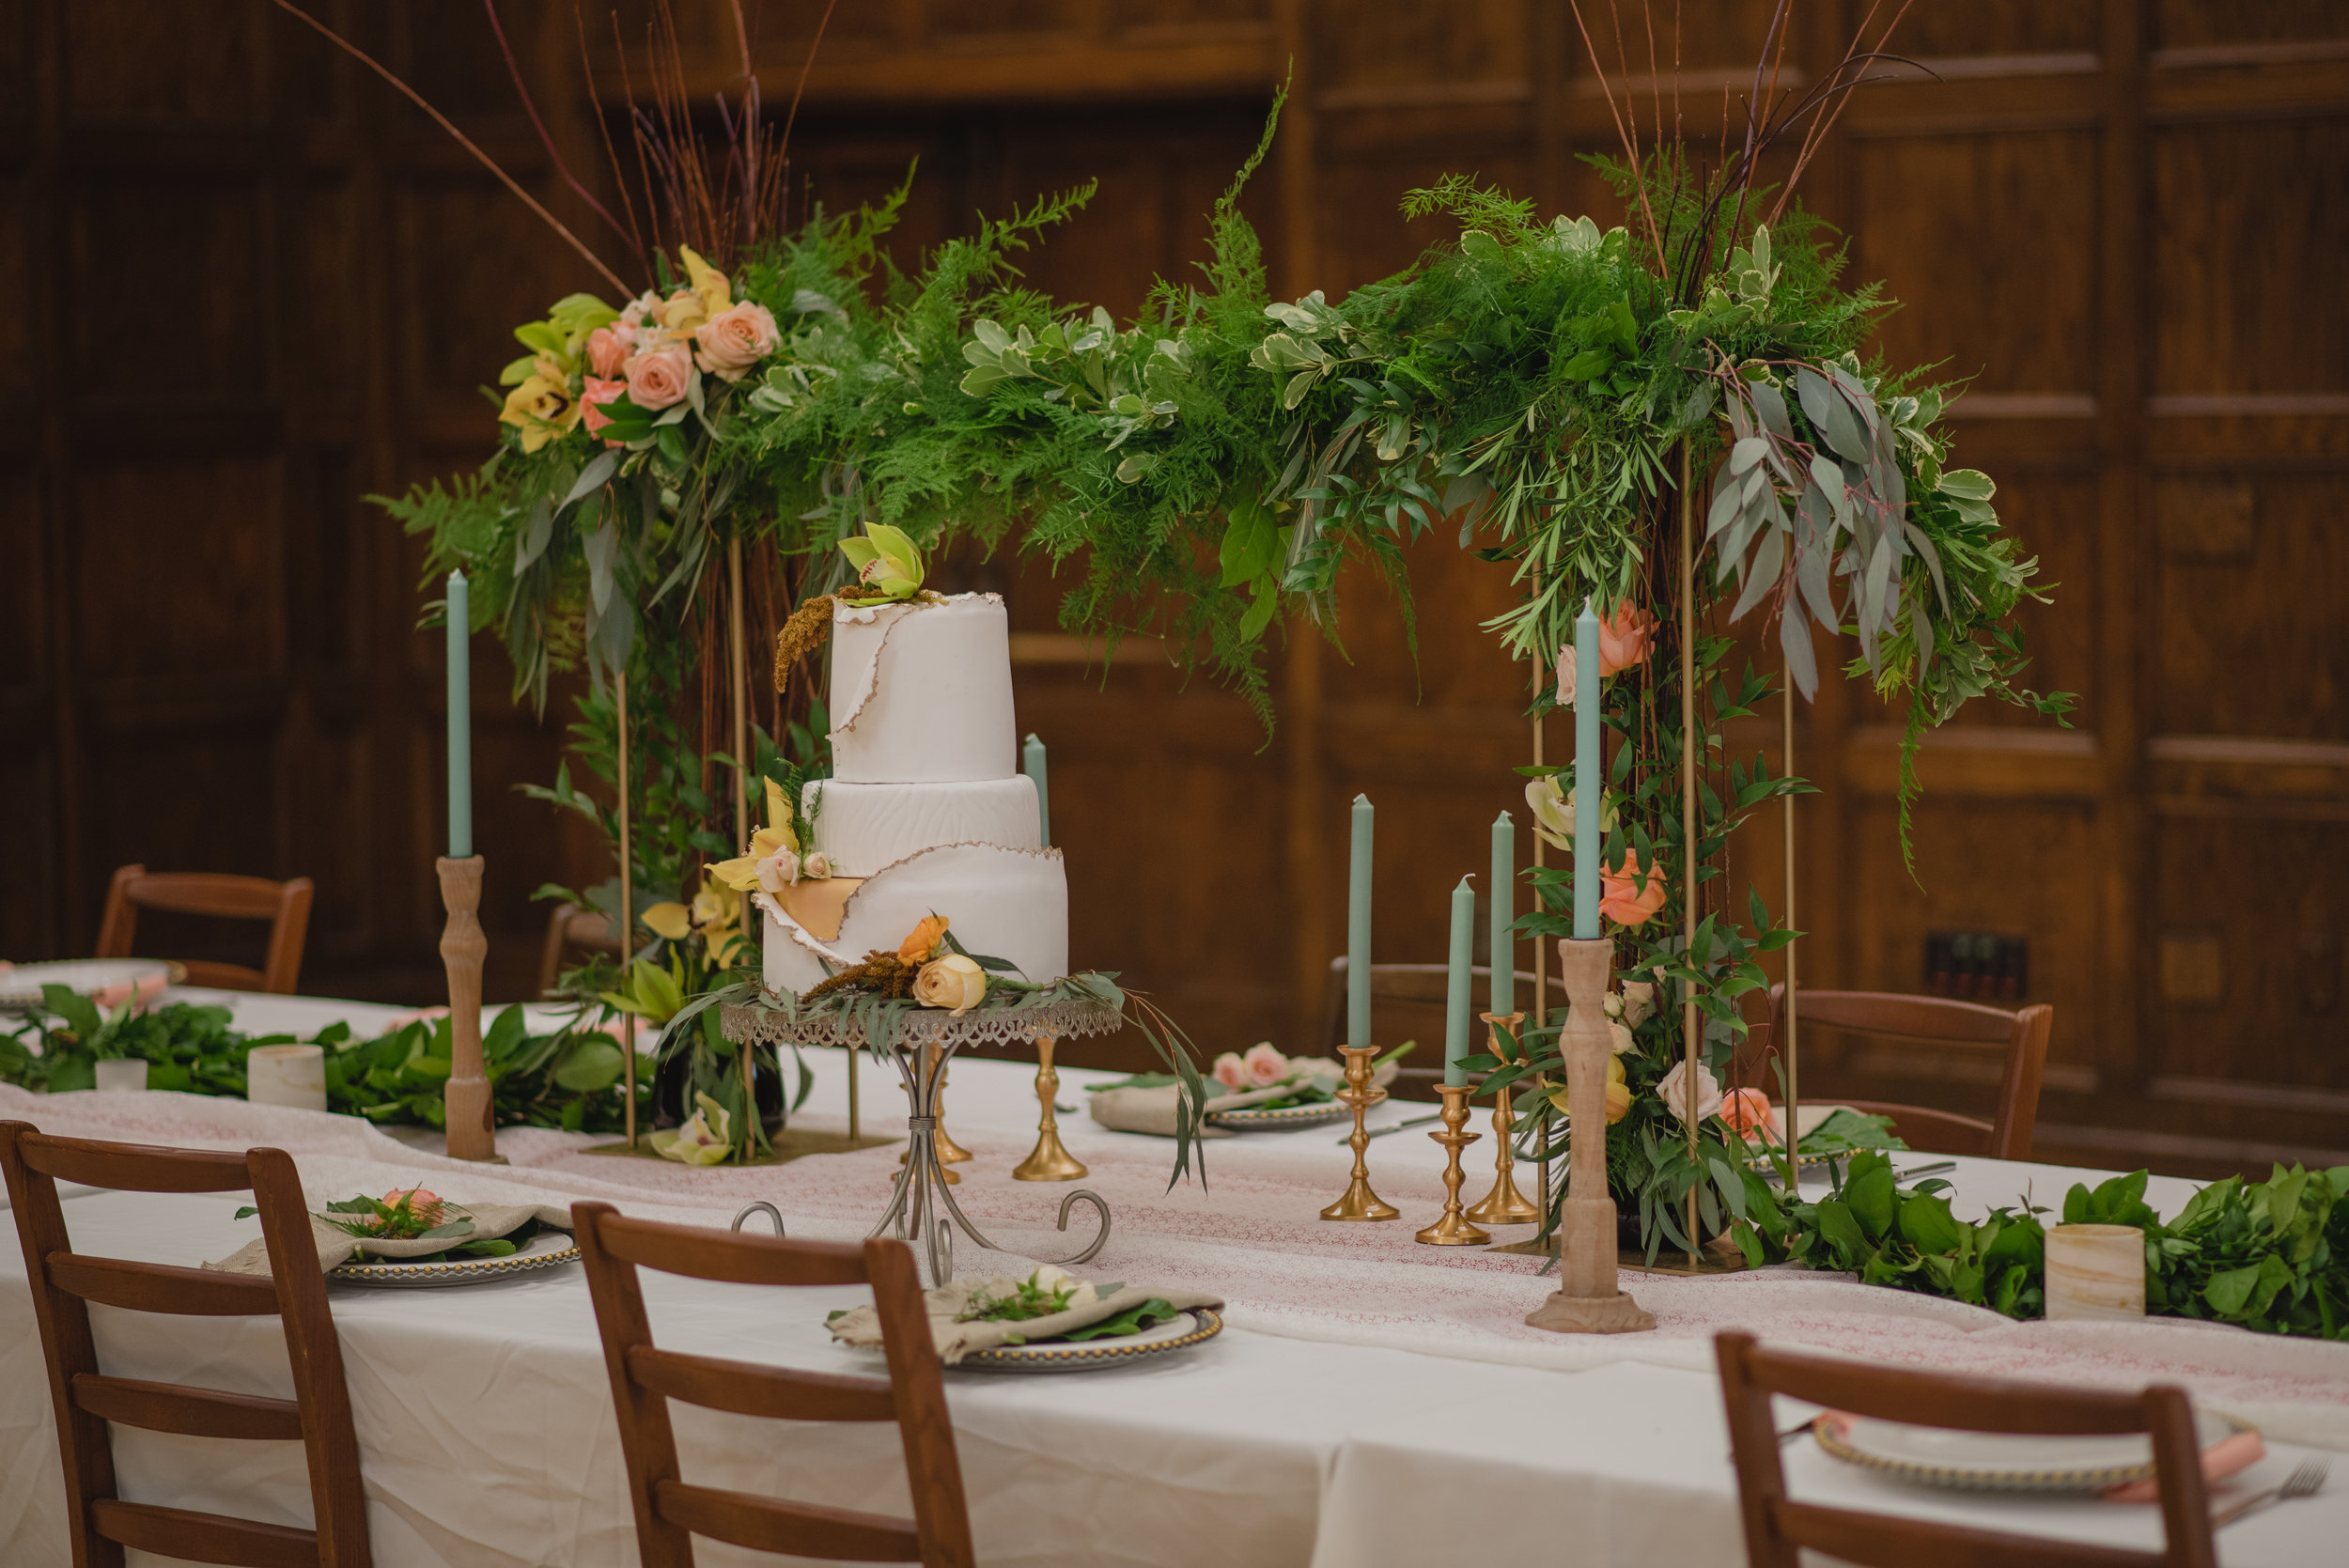 Flower garland sits on table with white linens inside of a wedding venue in Ames Iowa, with a white wedding cake .Floral accents of orchids and blush roses with gold candlesticks and green candles